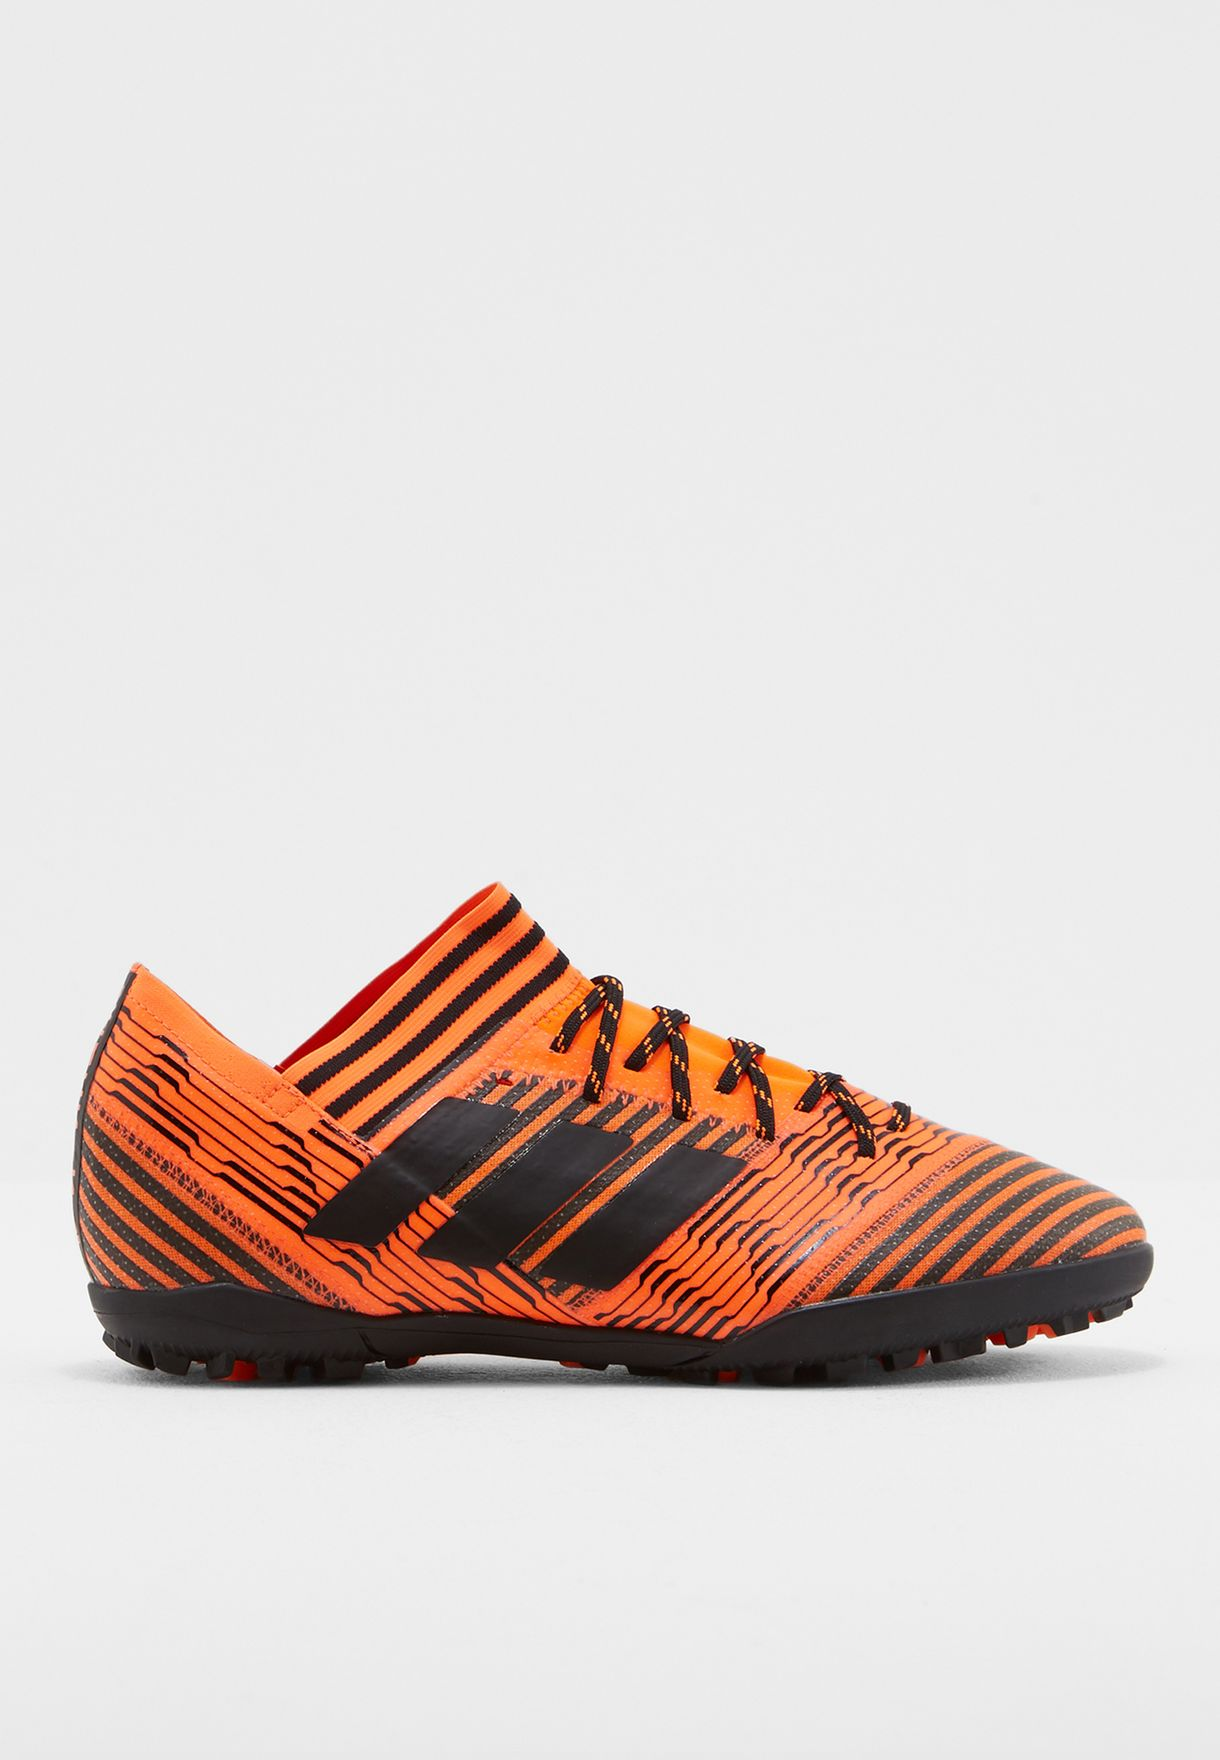 bf71e5f70c99 Shop adidas prints Nemeziz Tango 17.3 TF BY2827 for Men in Saudi -  AD476SH46JSJ